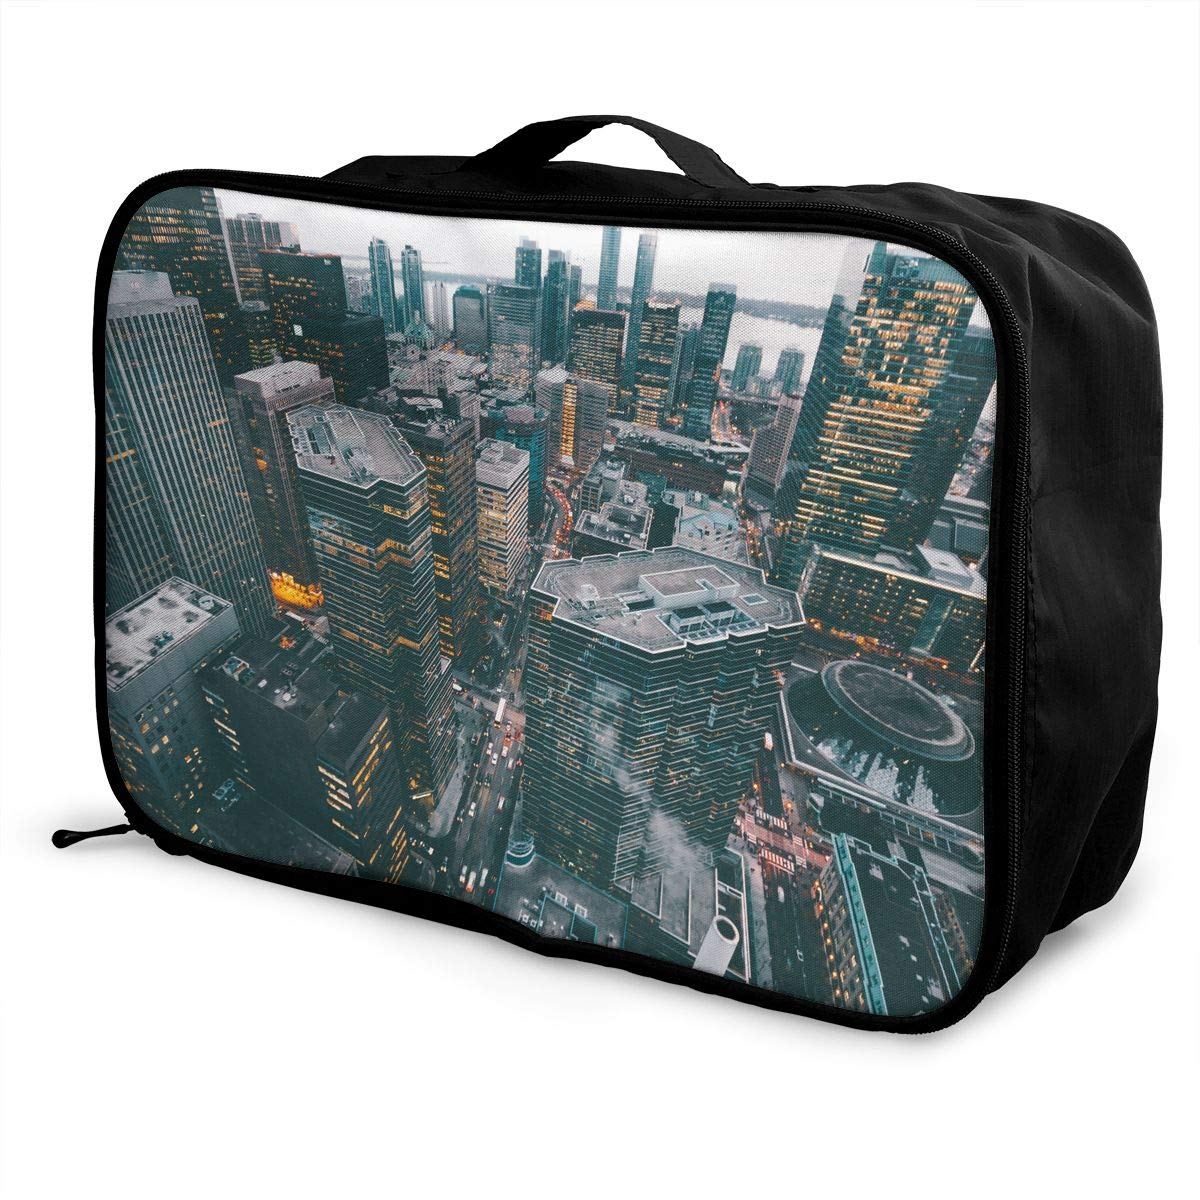 Travel Luggage Duffle Bag Lightweight Portable Handbag New York City Large Capacity Waterproof Foldable Storage Tote